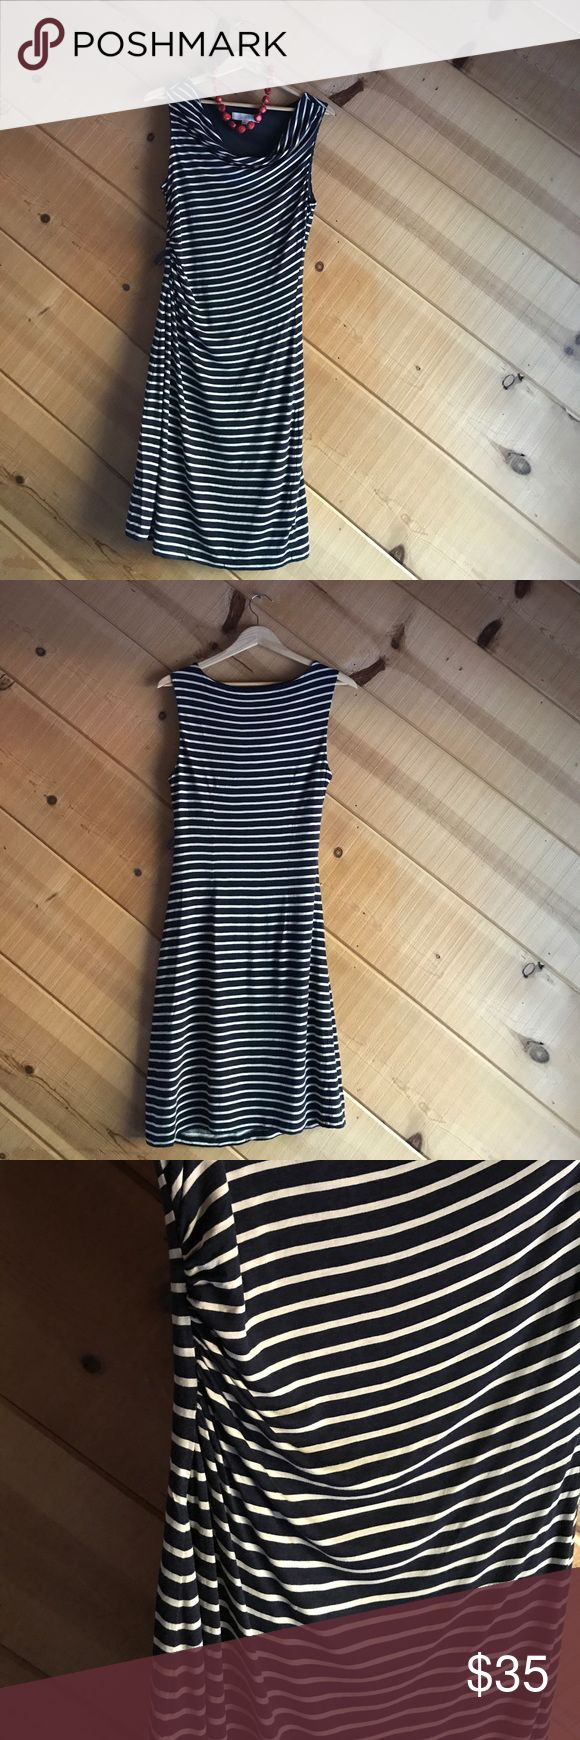 Striped Party Dress This form fitting navy blue and white striped dress is for going out! Pairs great with accent accessories like a chunky red necklace (not included) and red heels. Gathered on the right hip which gives a nice bit of cover for the tummy. Length hits at the knee. Pre worn great condition. LOFT Dresses Midi